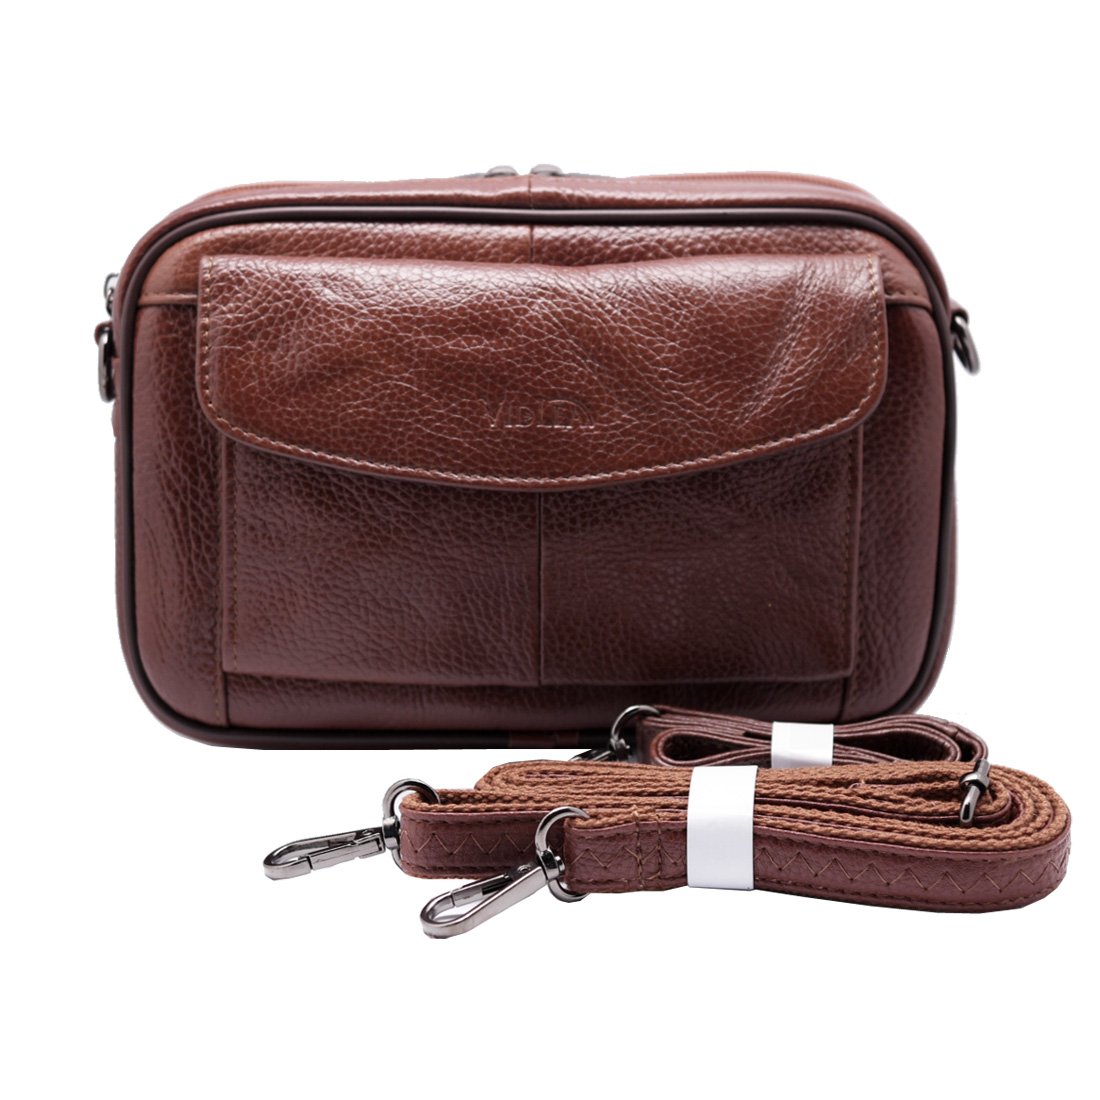 Mens Messenger Bag Tan Brown Cowhide Leather Handbag